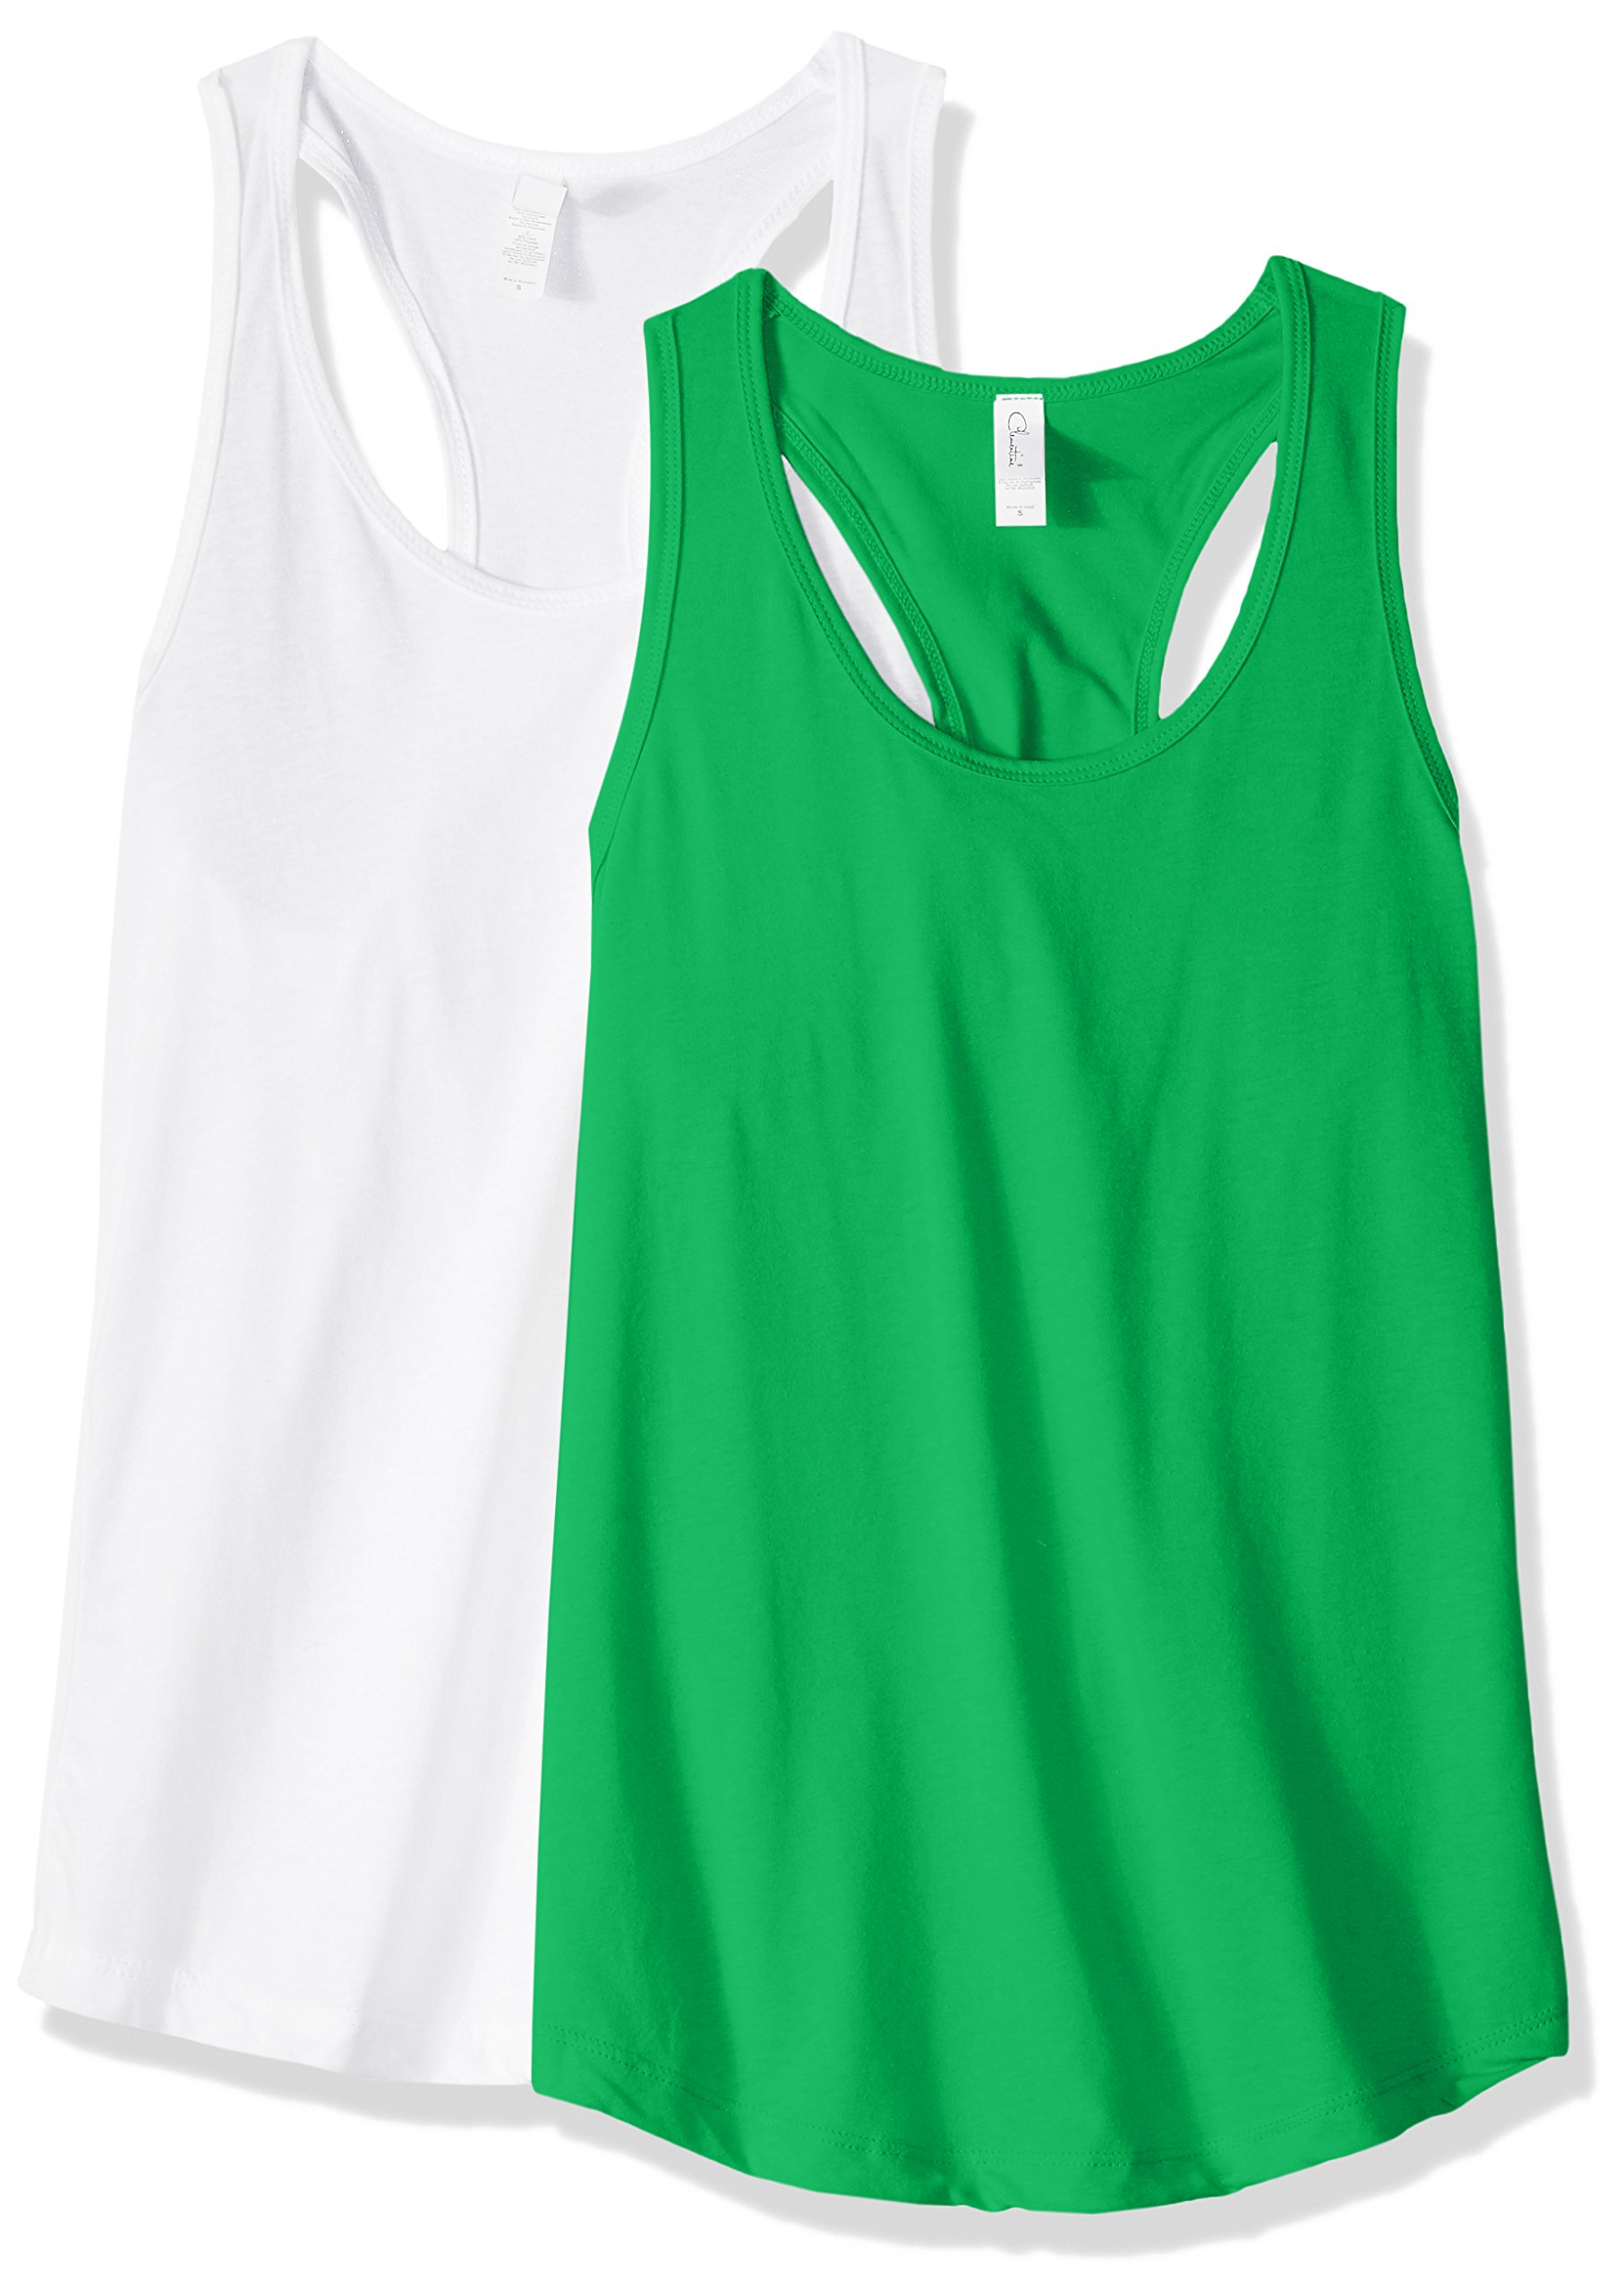 Clementine Apparel Women's Petite Plus Ideal Racerback Tank Tops (Pack of 2), Kelly GreenWhite, M